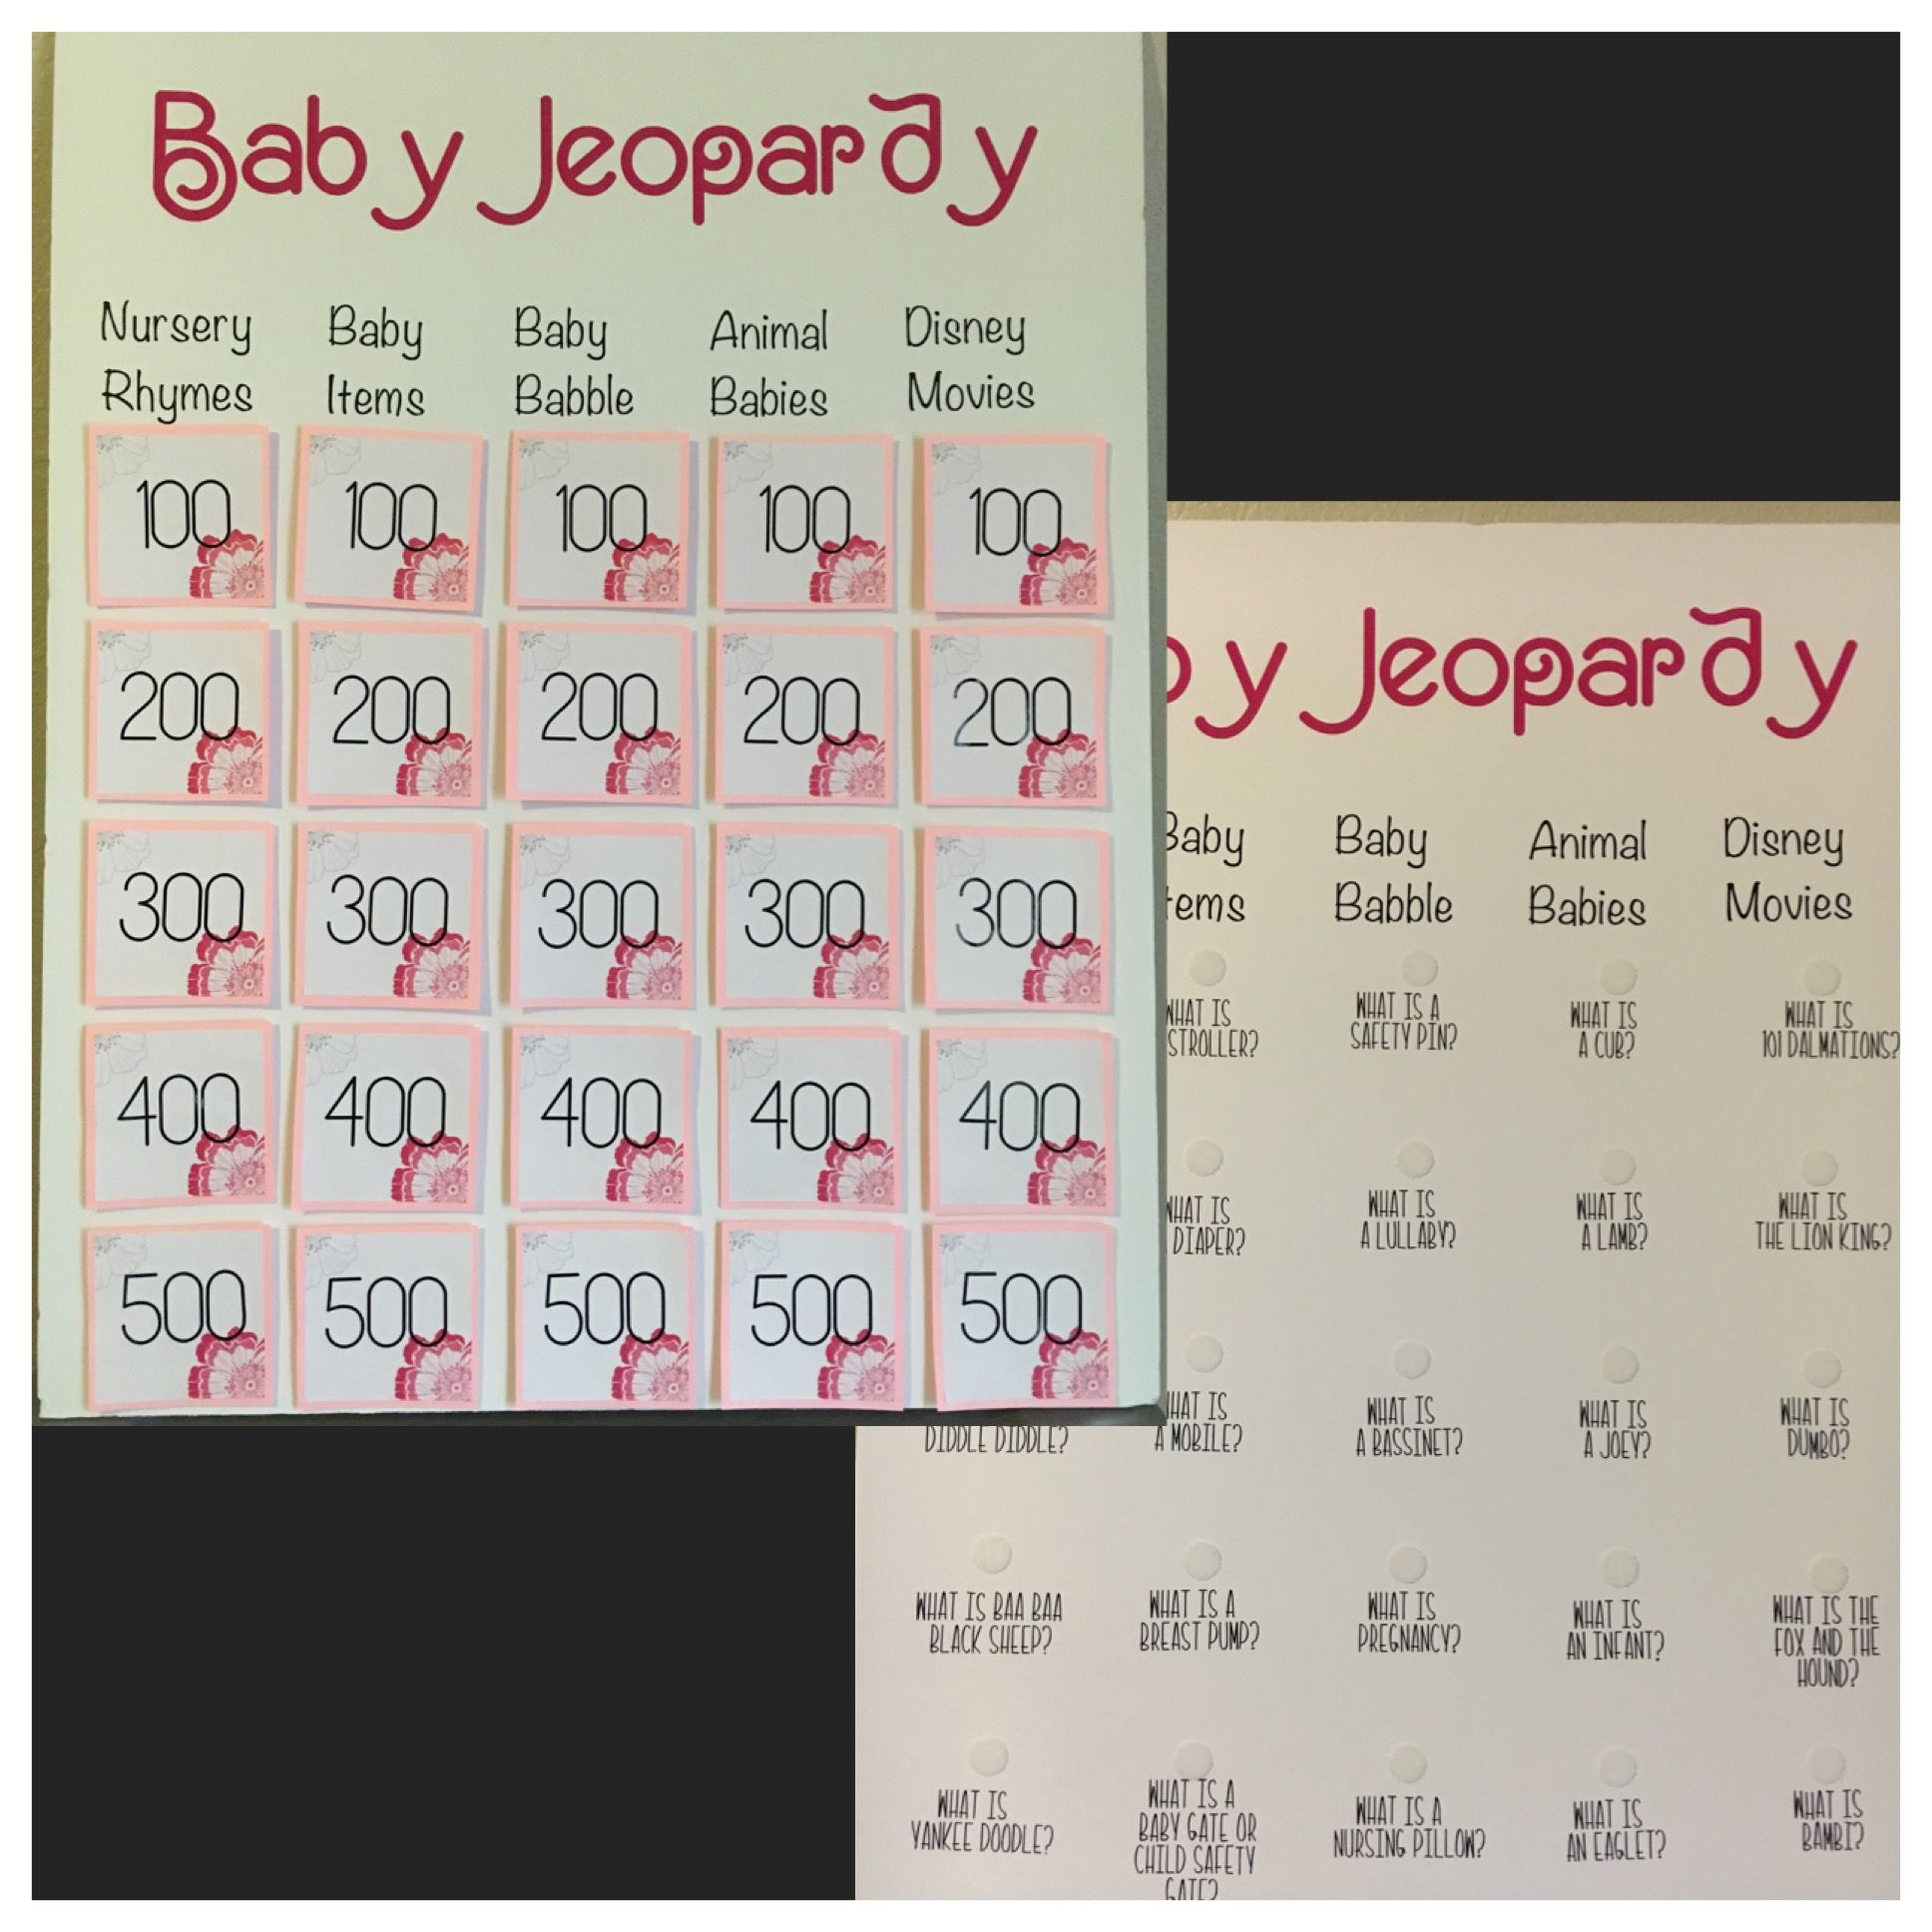 Exceptional Baby Jeopardy Made This Game For My Sisteru0027s Baby Shower. I Love How It  Turned